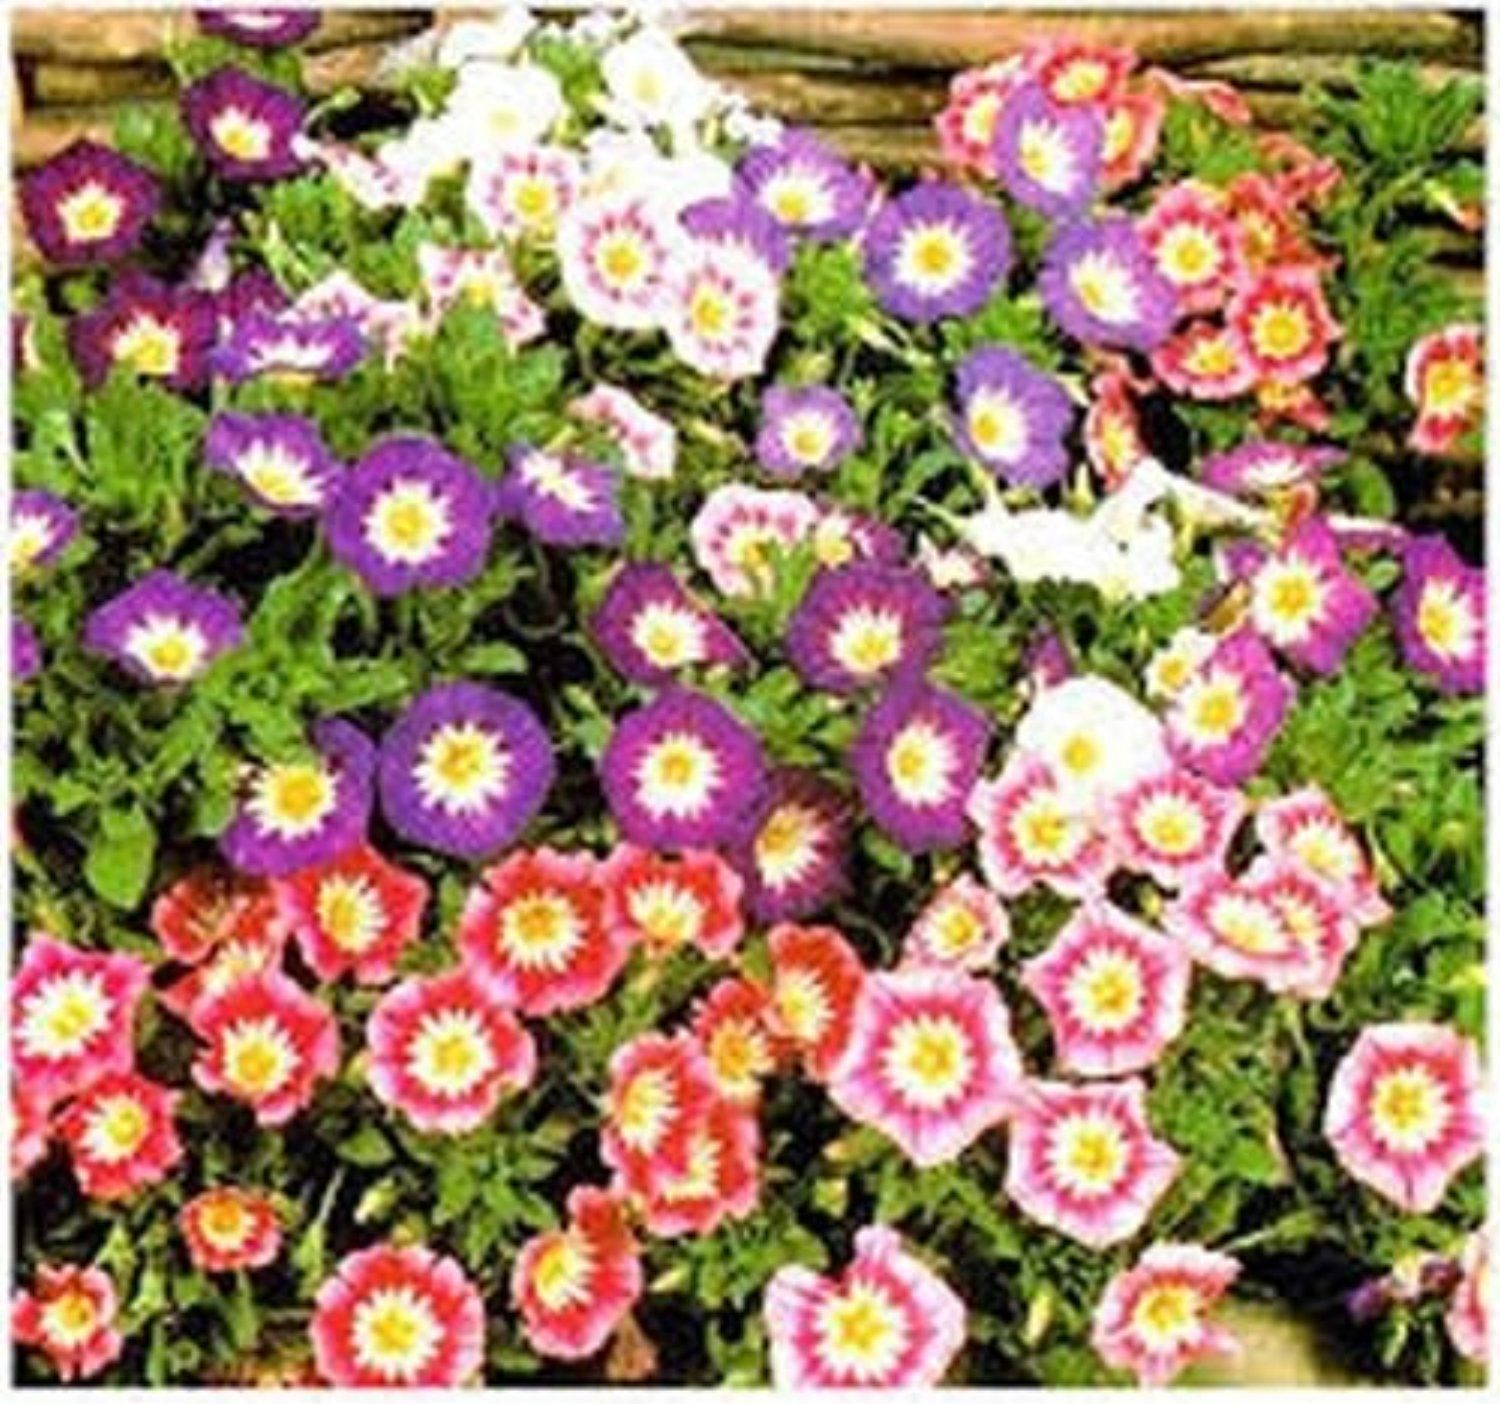 Convolvulus Tricolor Minor Morning Glory Ensign Mix 50 seeds